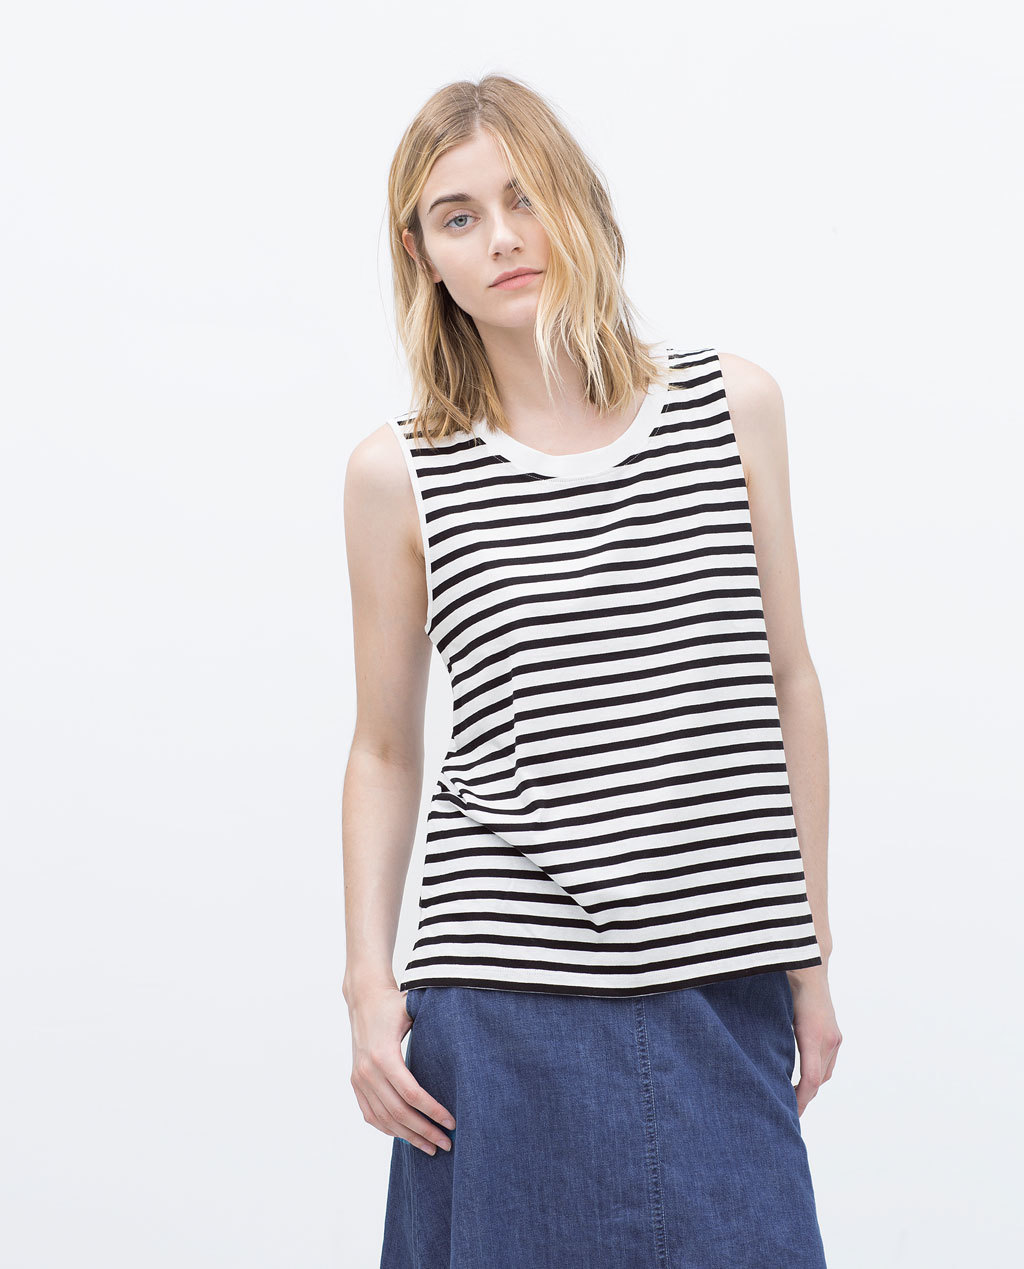 Cotton Strappy Tank Top - neckline: round neck; pattern: horizontal stripes; sleeve style: sleeveless; predominant colour: white; secondary colour: black; occasions: casual; length: standard; style: top; fit: body skimming; sleeve length: sleeveless; pattern type: fabric; pattern size: standard; texture group: jersey - stretchy/drapey; season: s/s 2015